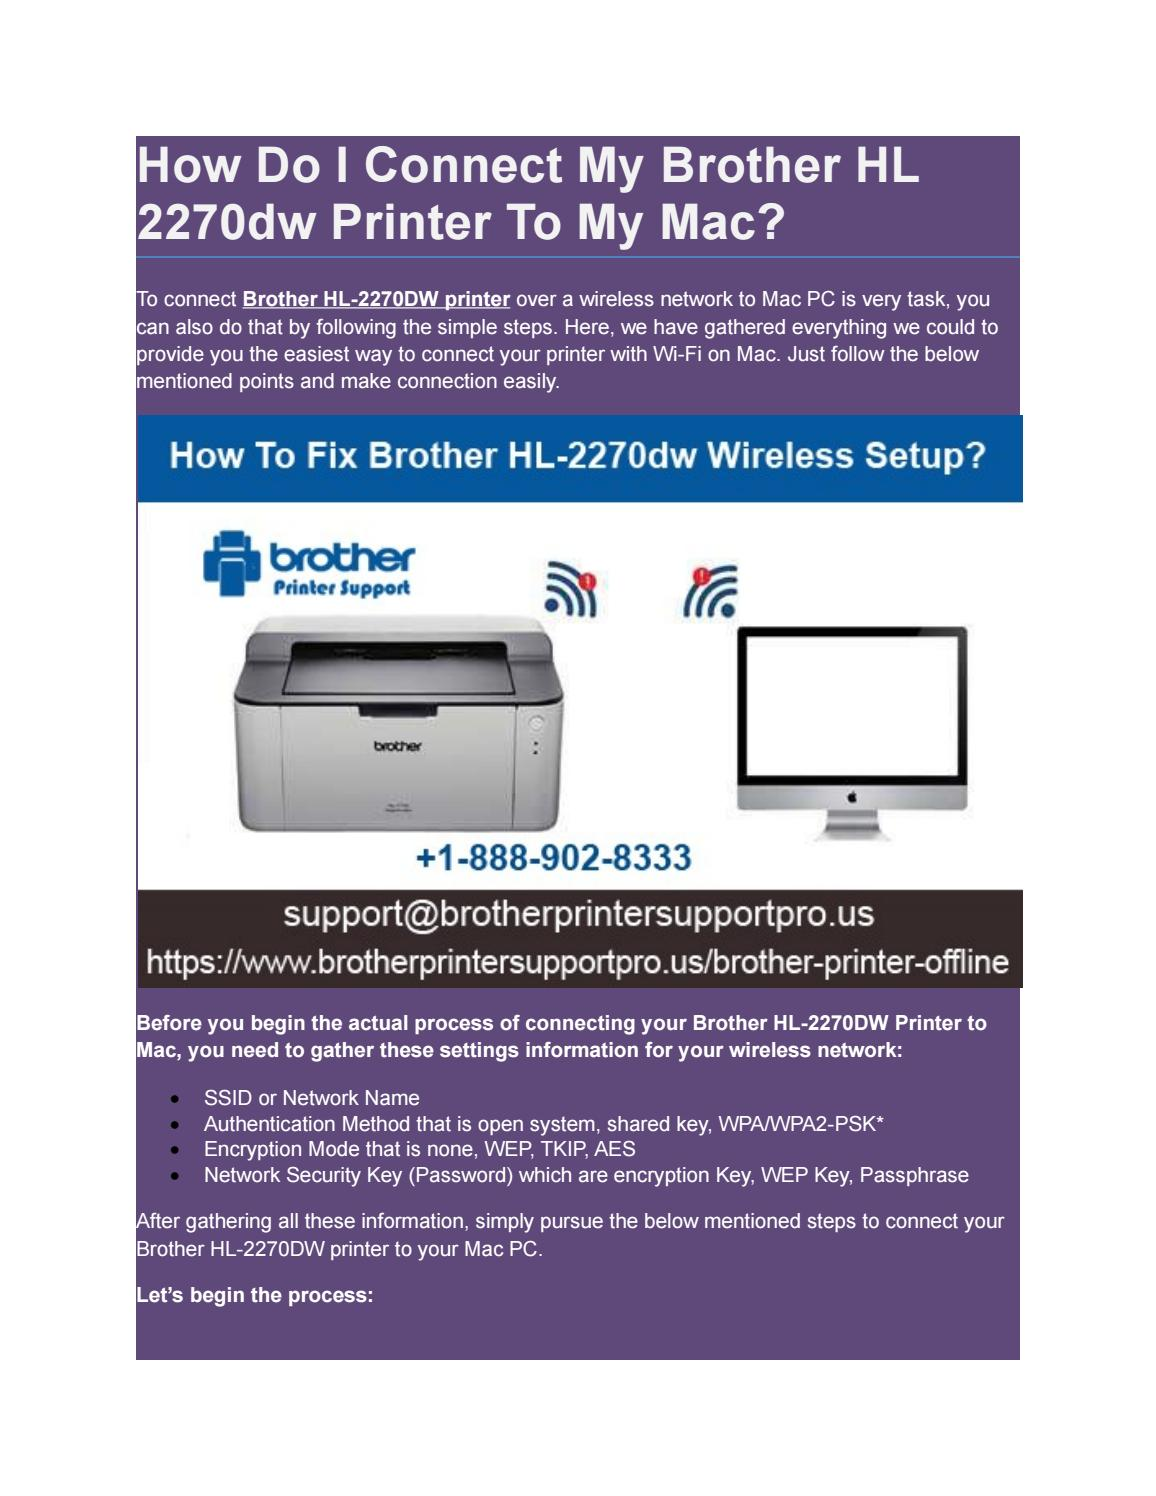 How Do I Connect My Brother HL 2270dw Printer To My Mac? by